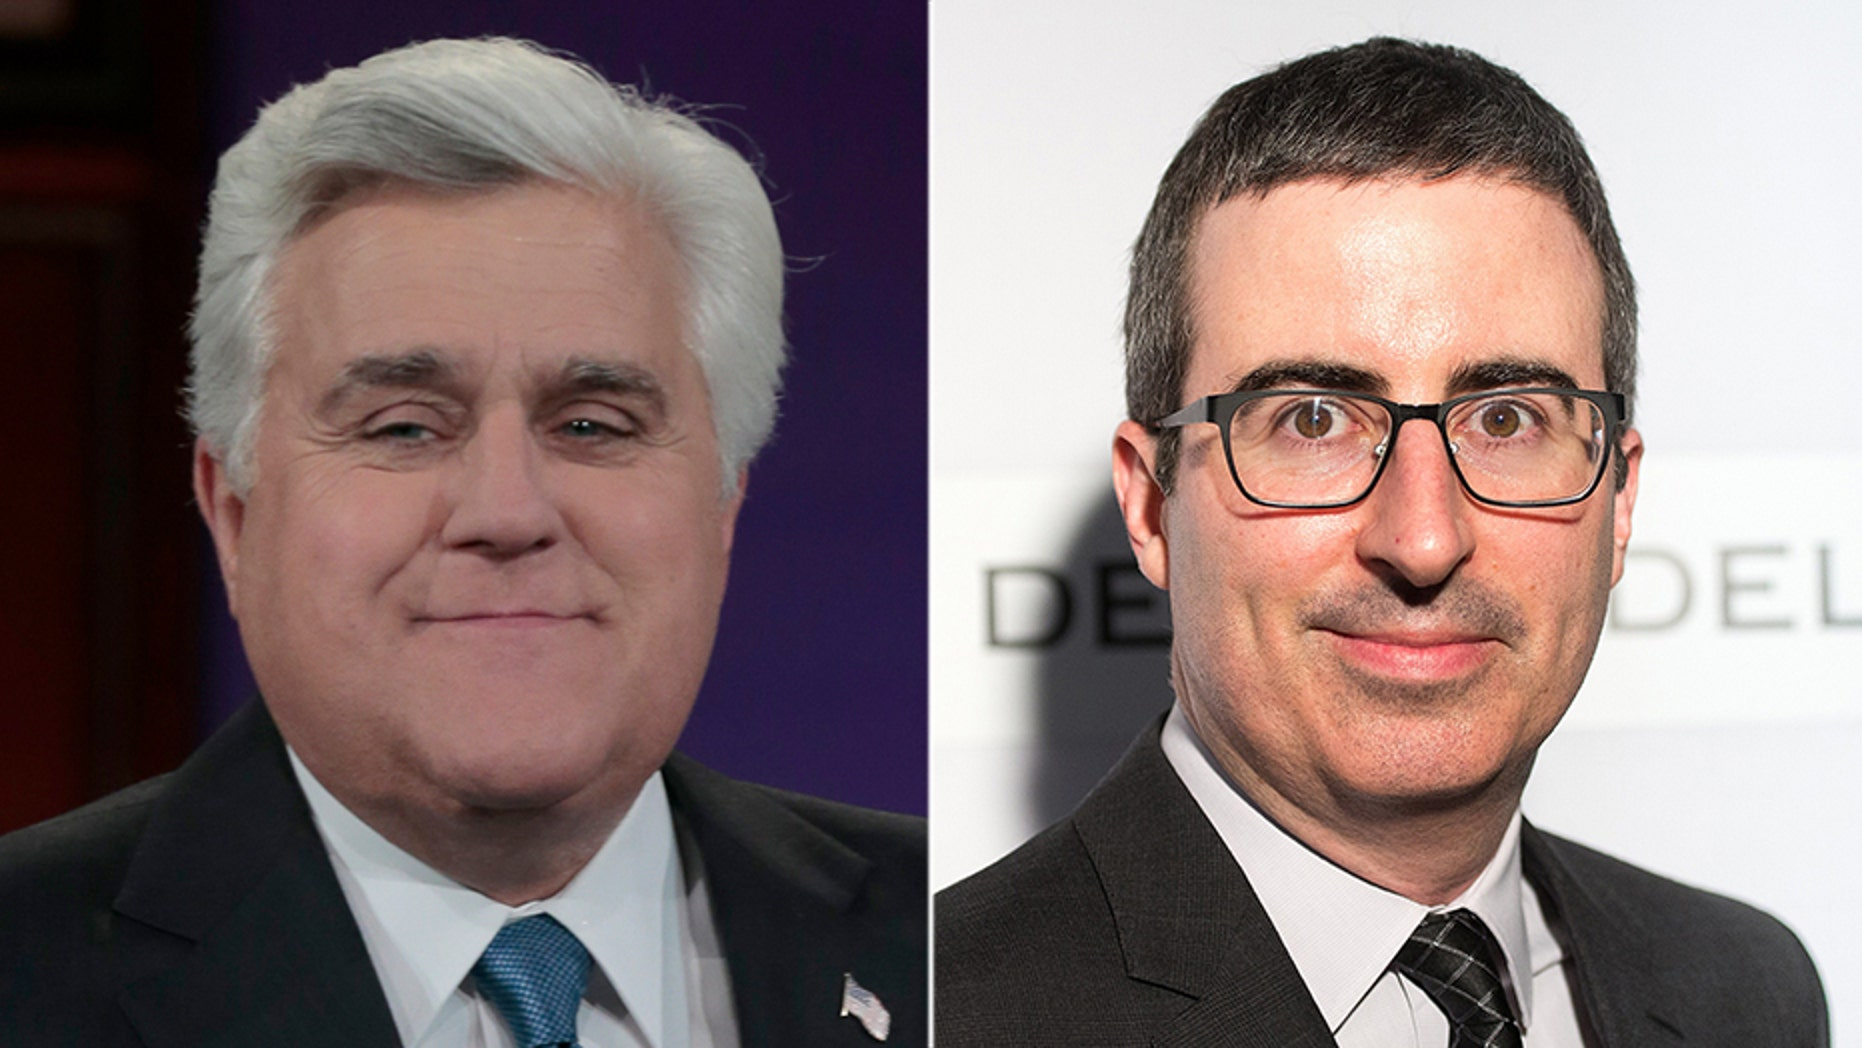 """John Oliver pointed out the hypocrisy in Jay Leno's recent calls for increased """"civility"""" on late-night TV by airing jokes the former """"Tonight Show"""" host made about Monica Lewinsky. (Getty"""